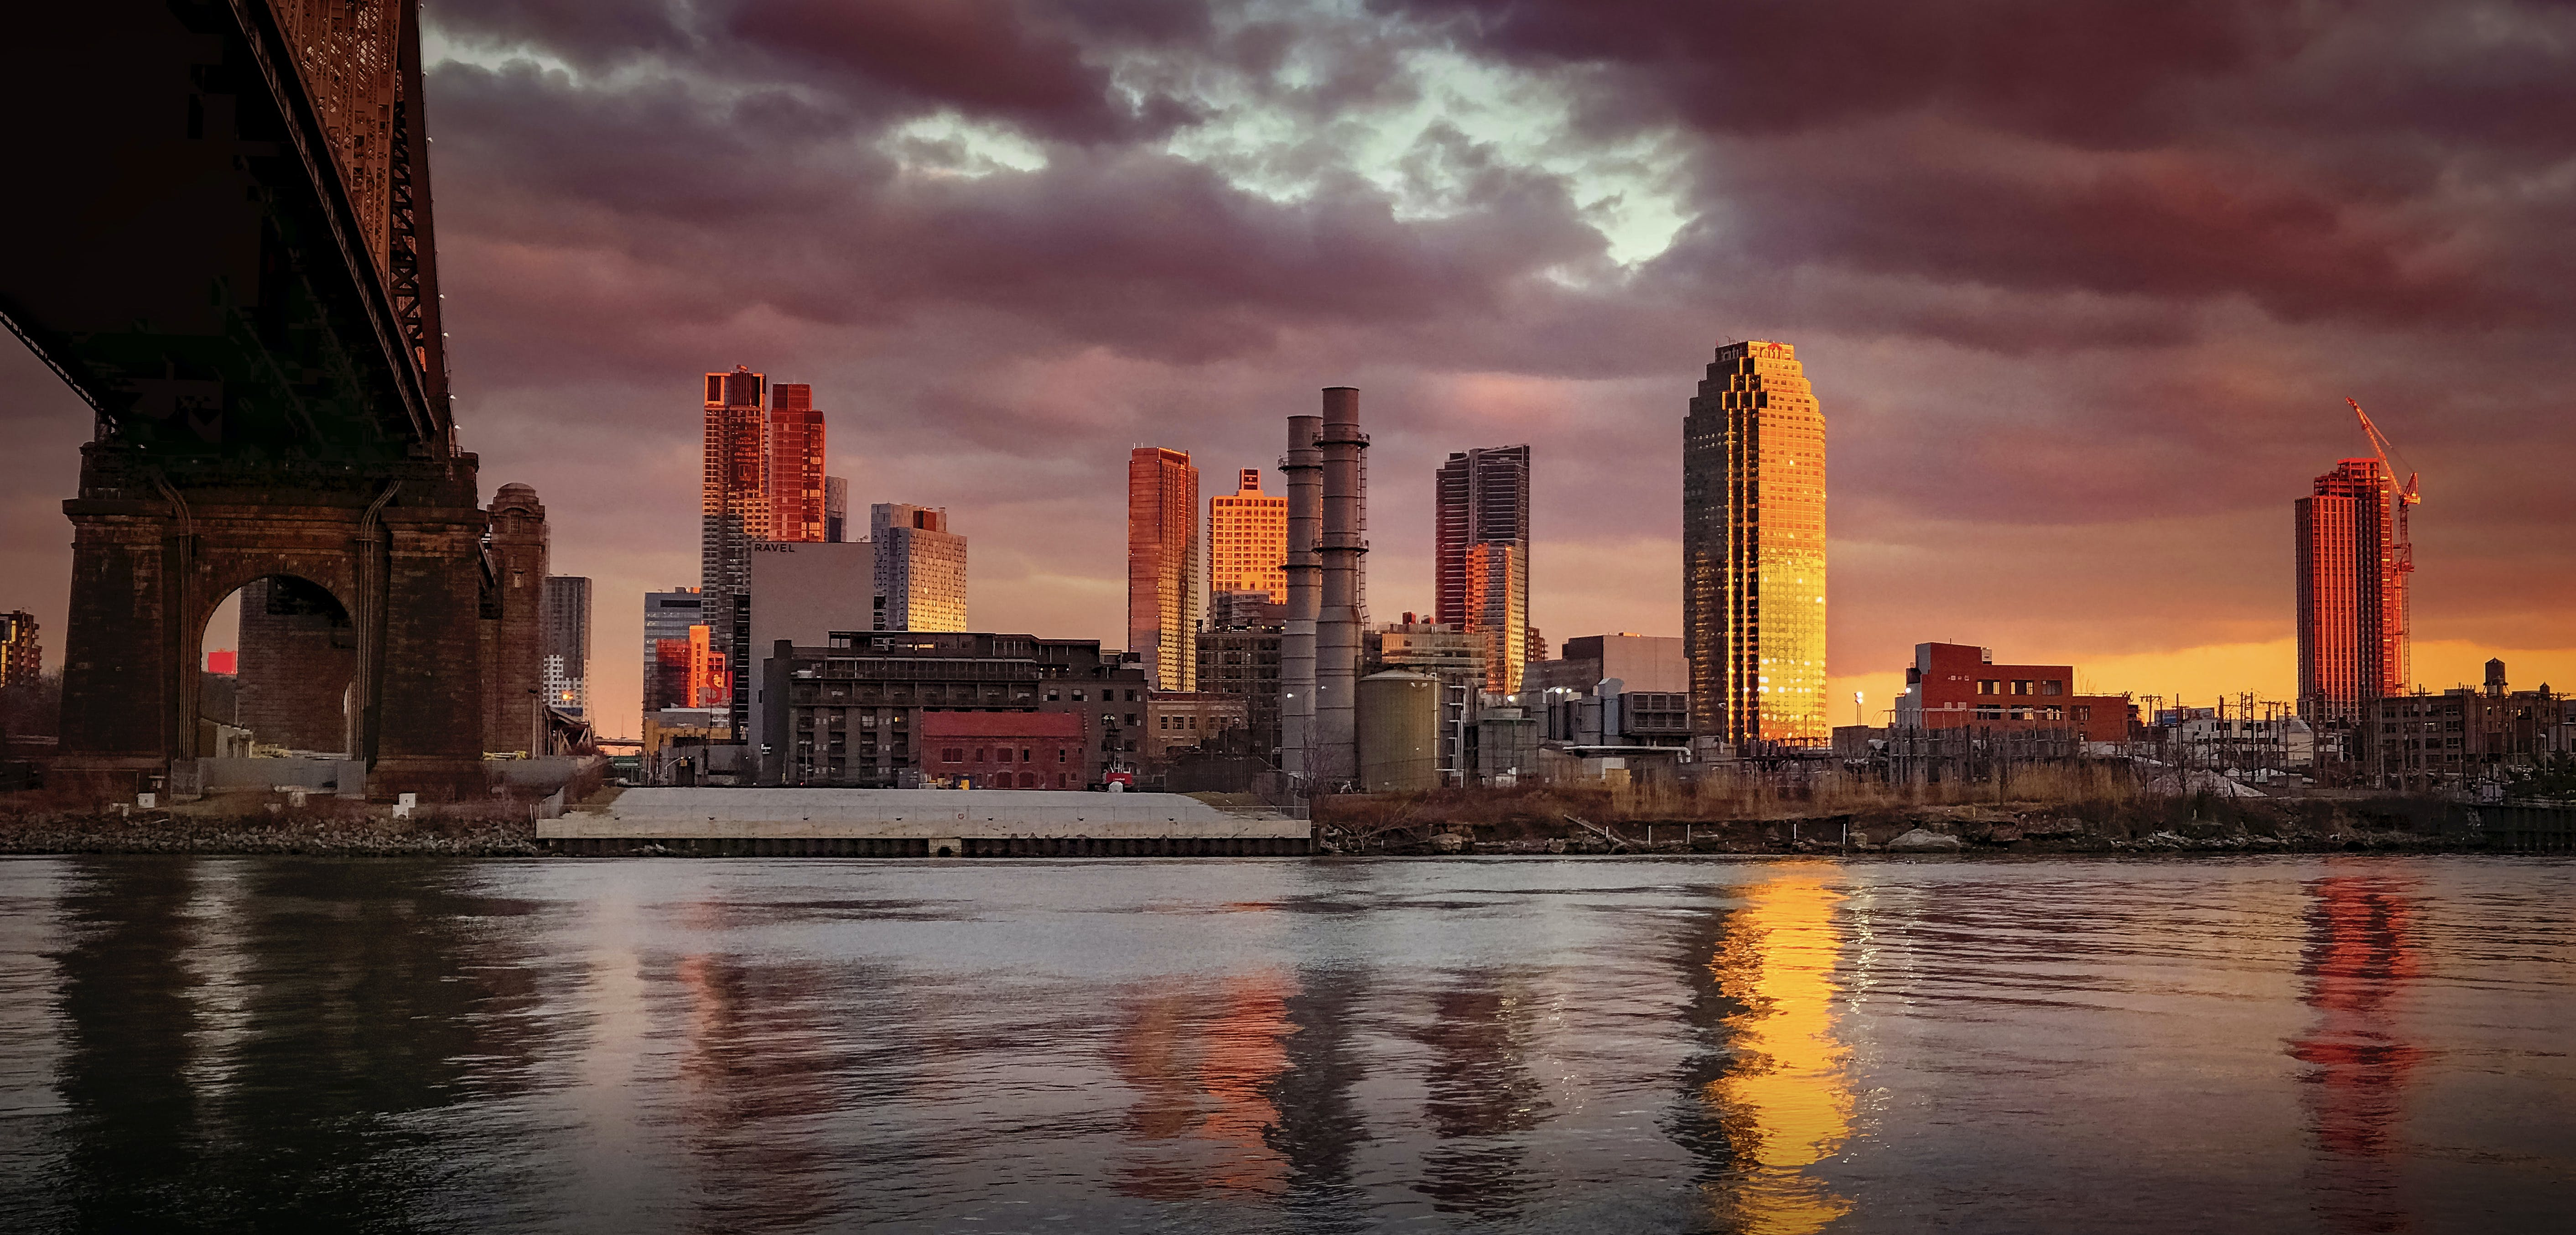 Panoramic Photography of City Near Body of Water